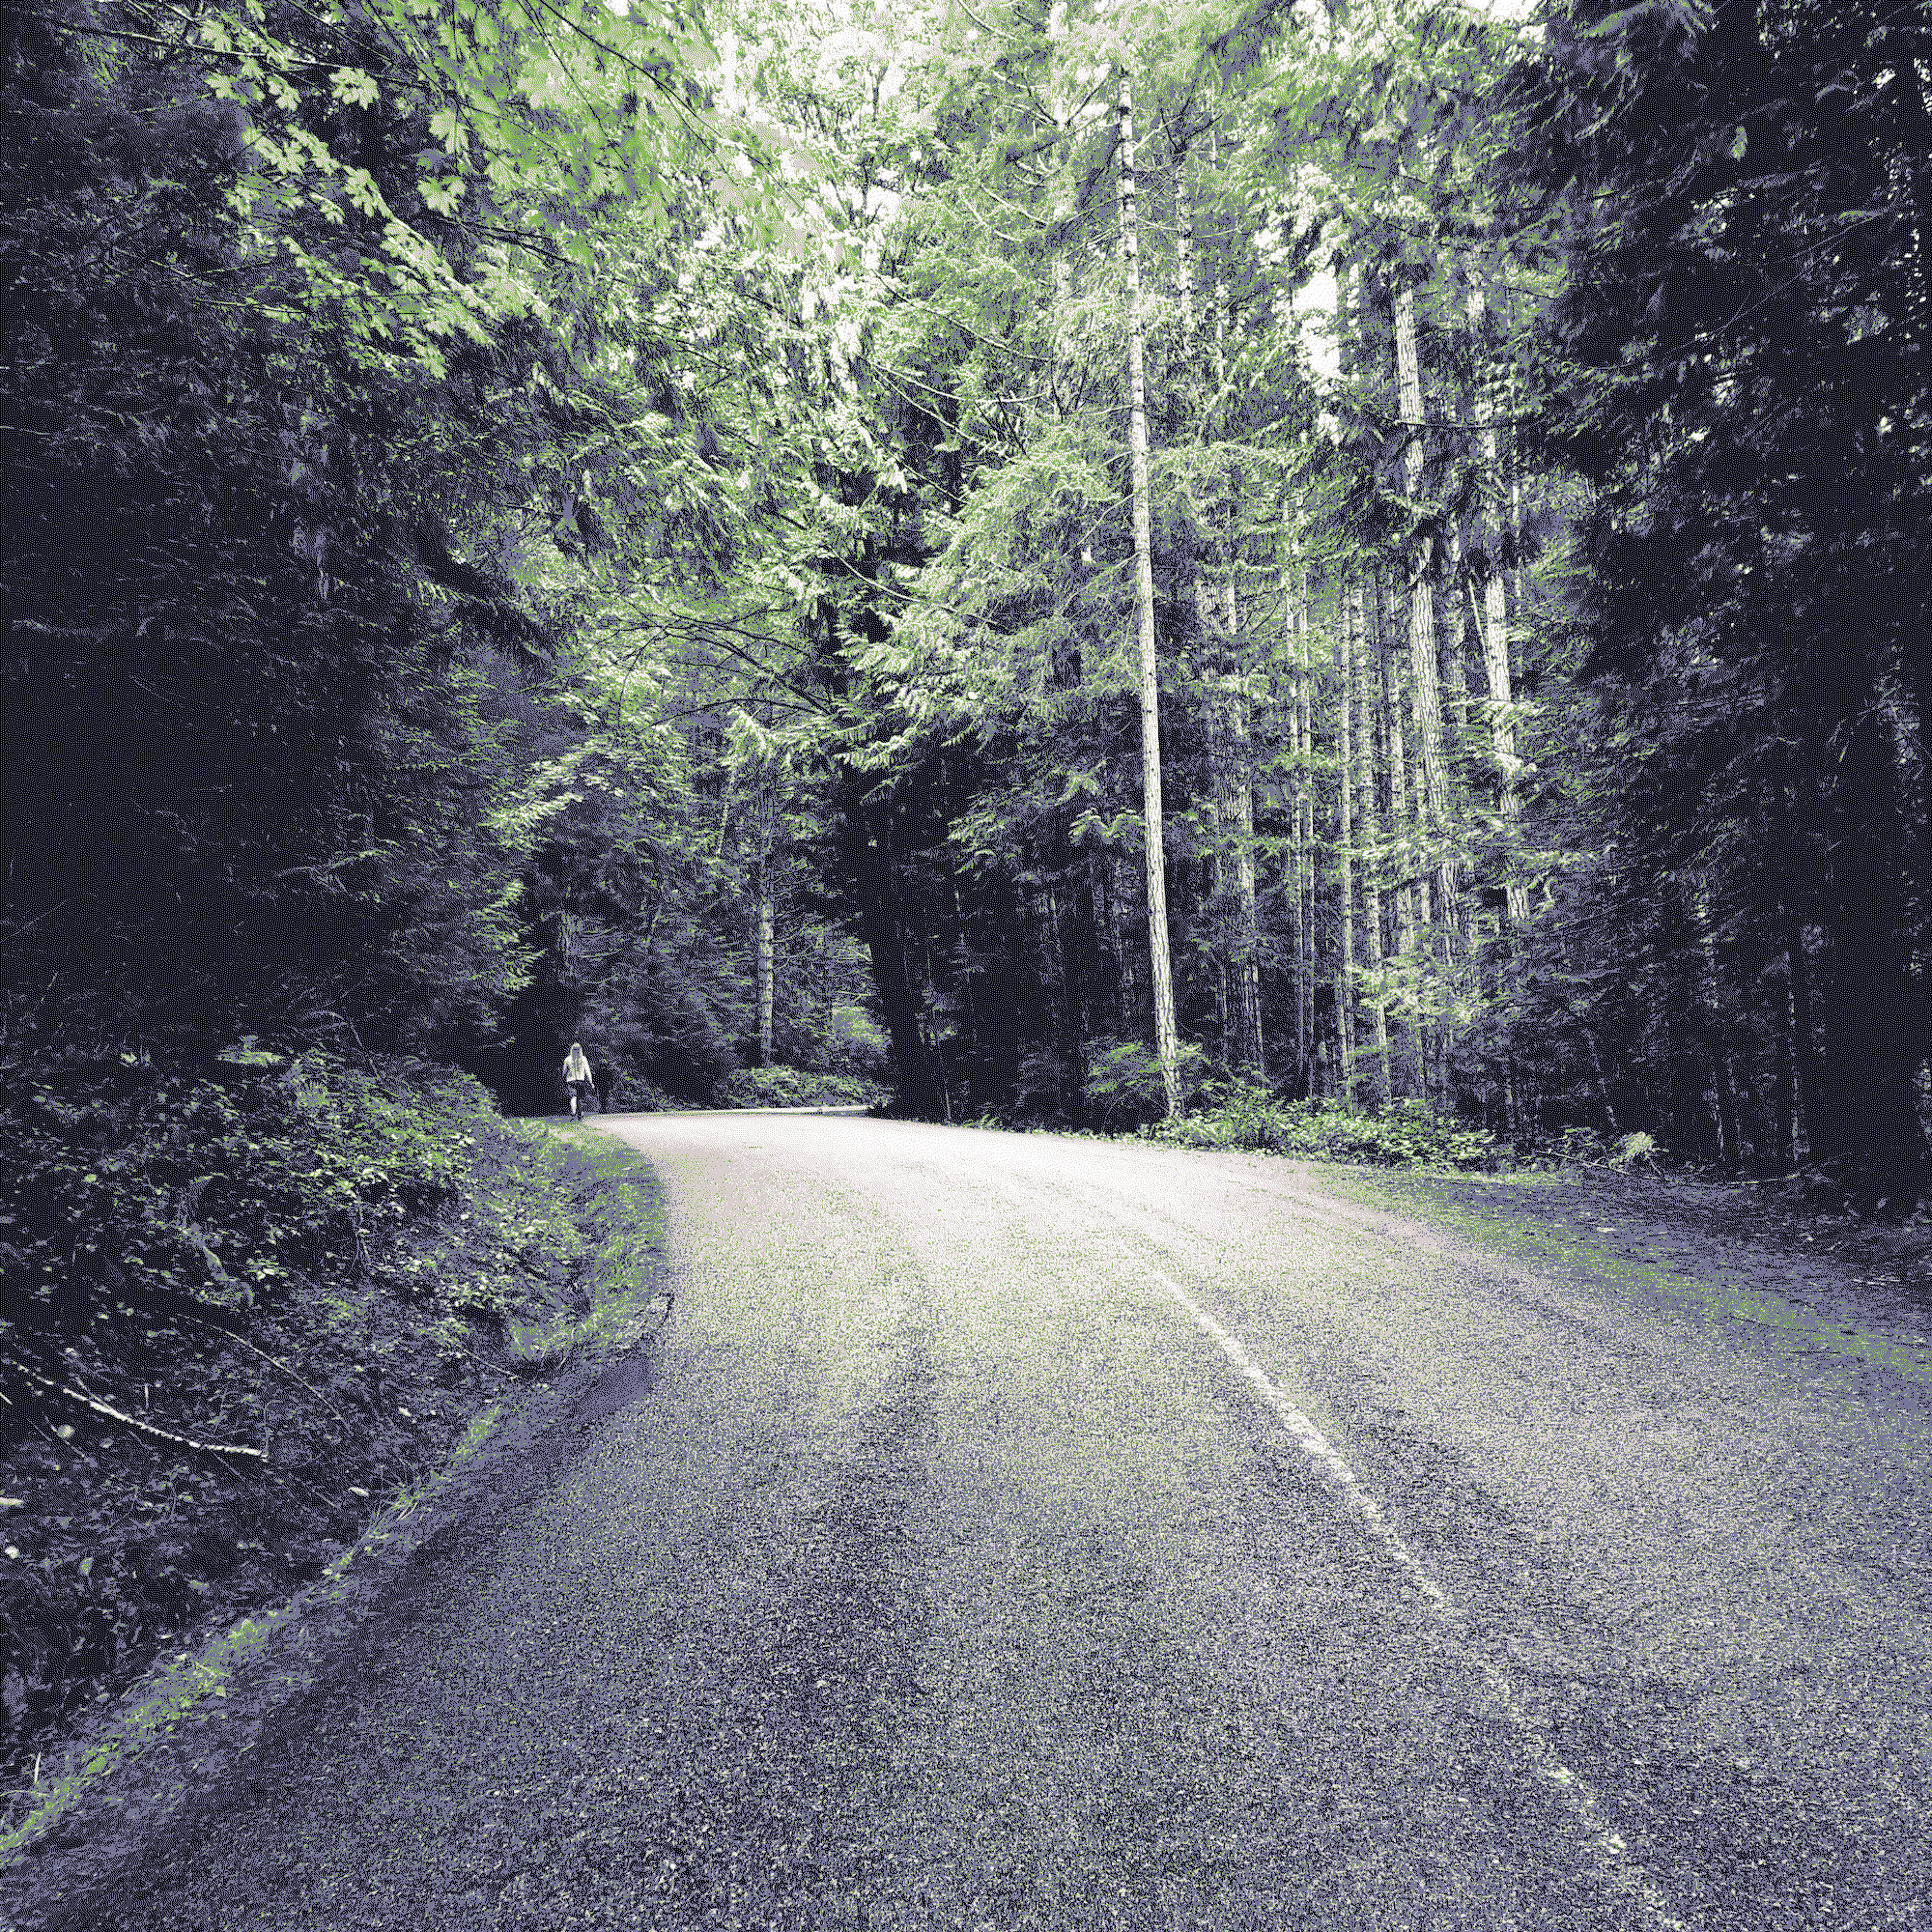 Arty dithered photograph of a runner on a misty road in the forest.